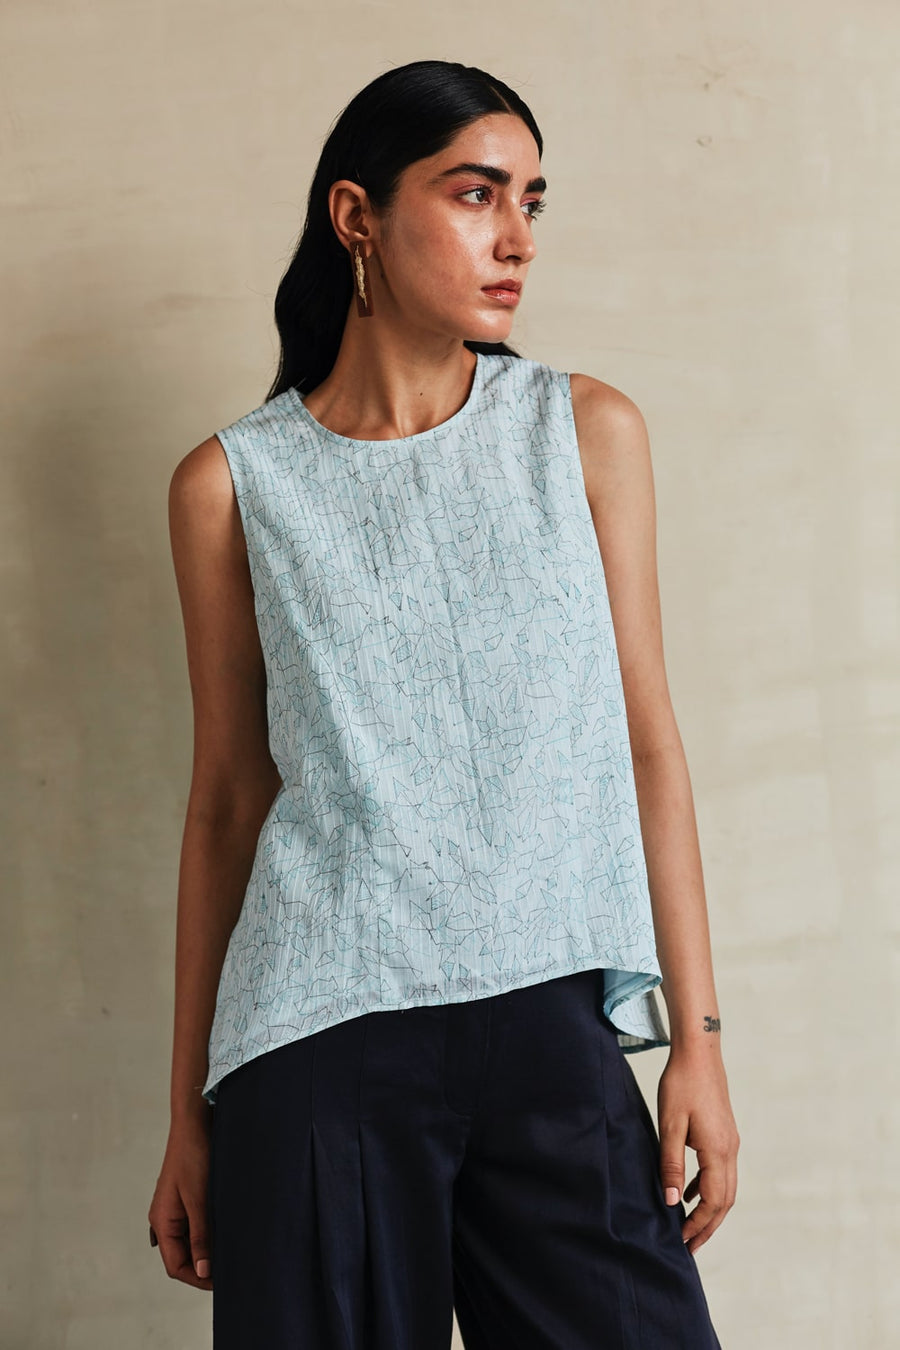 Bluebird A-line Top - Ethical made fashion - onlyethikal